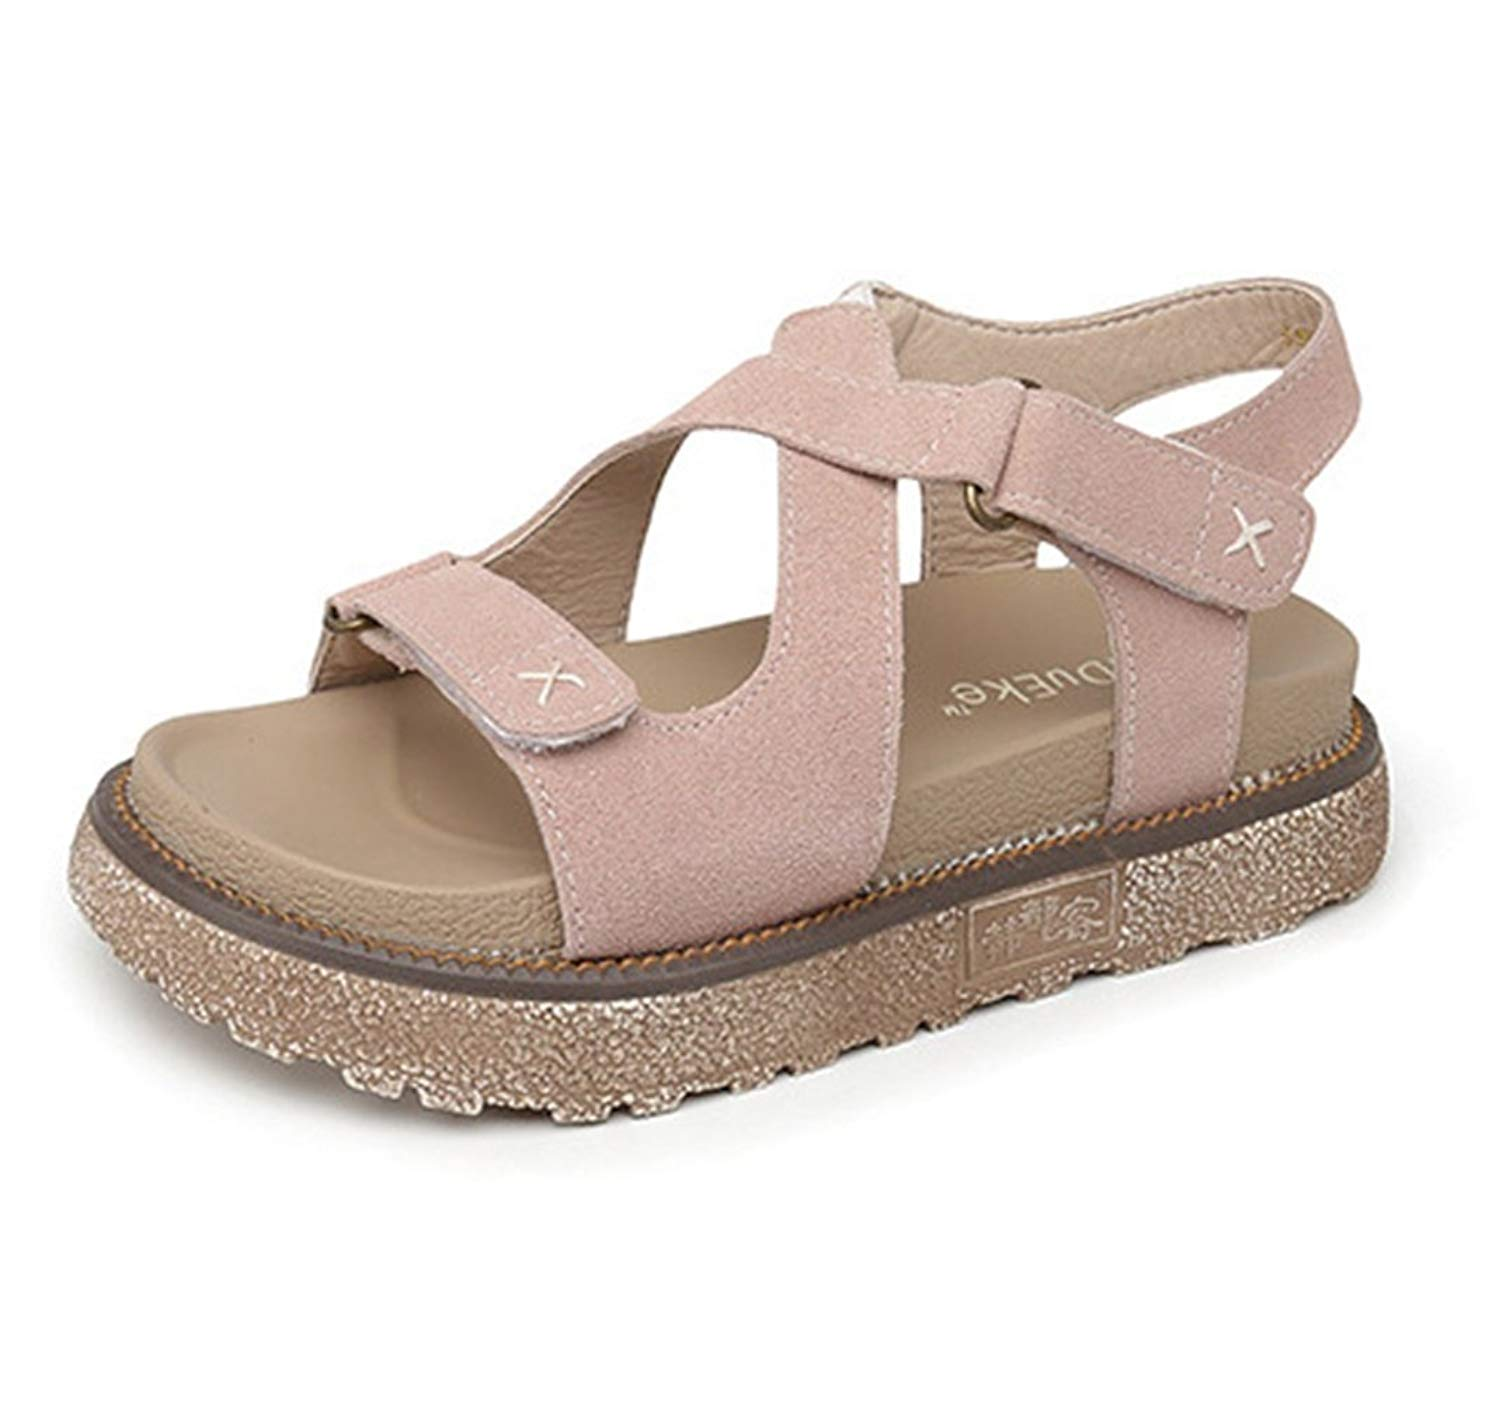 ed745d6cc309 Get Quotations · Zarbrina Womens Flat Platform Sandals Casual Rome  Fisherman Summer Open Toe Buckle Thick Bottom Shoes